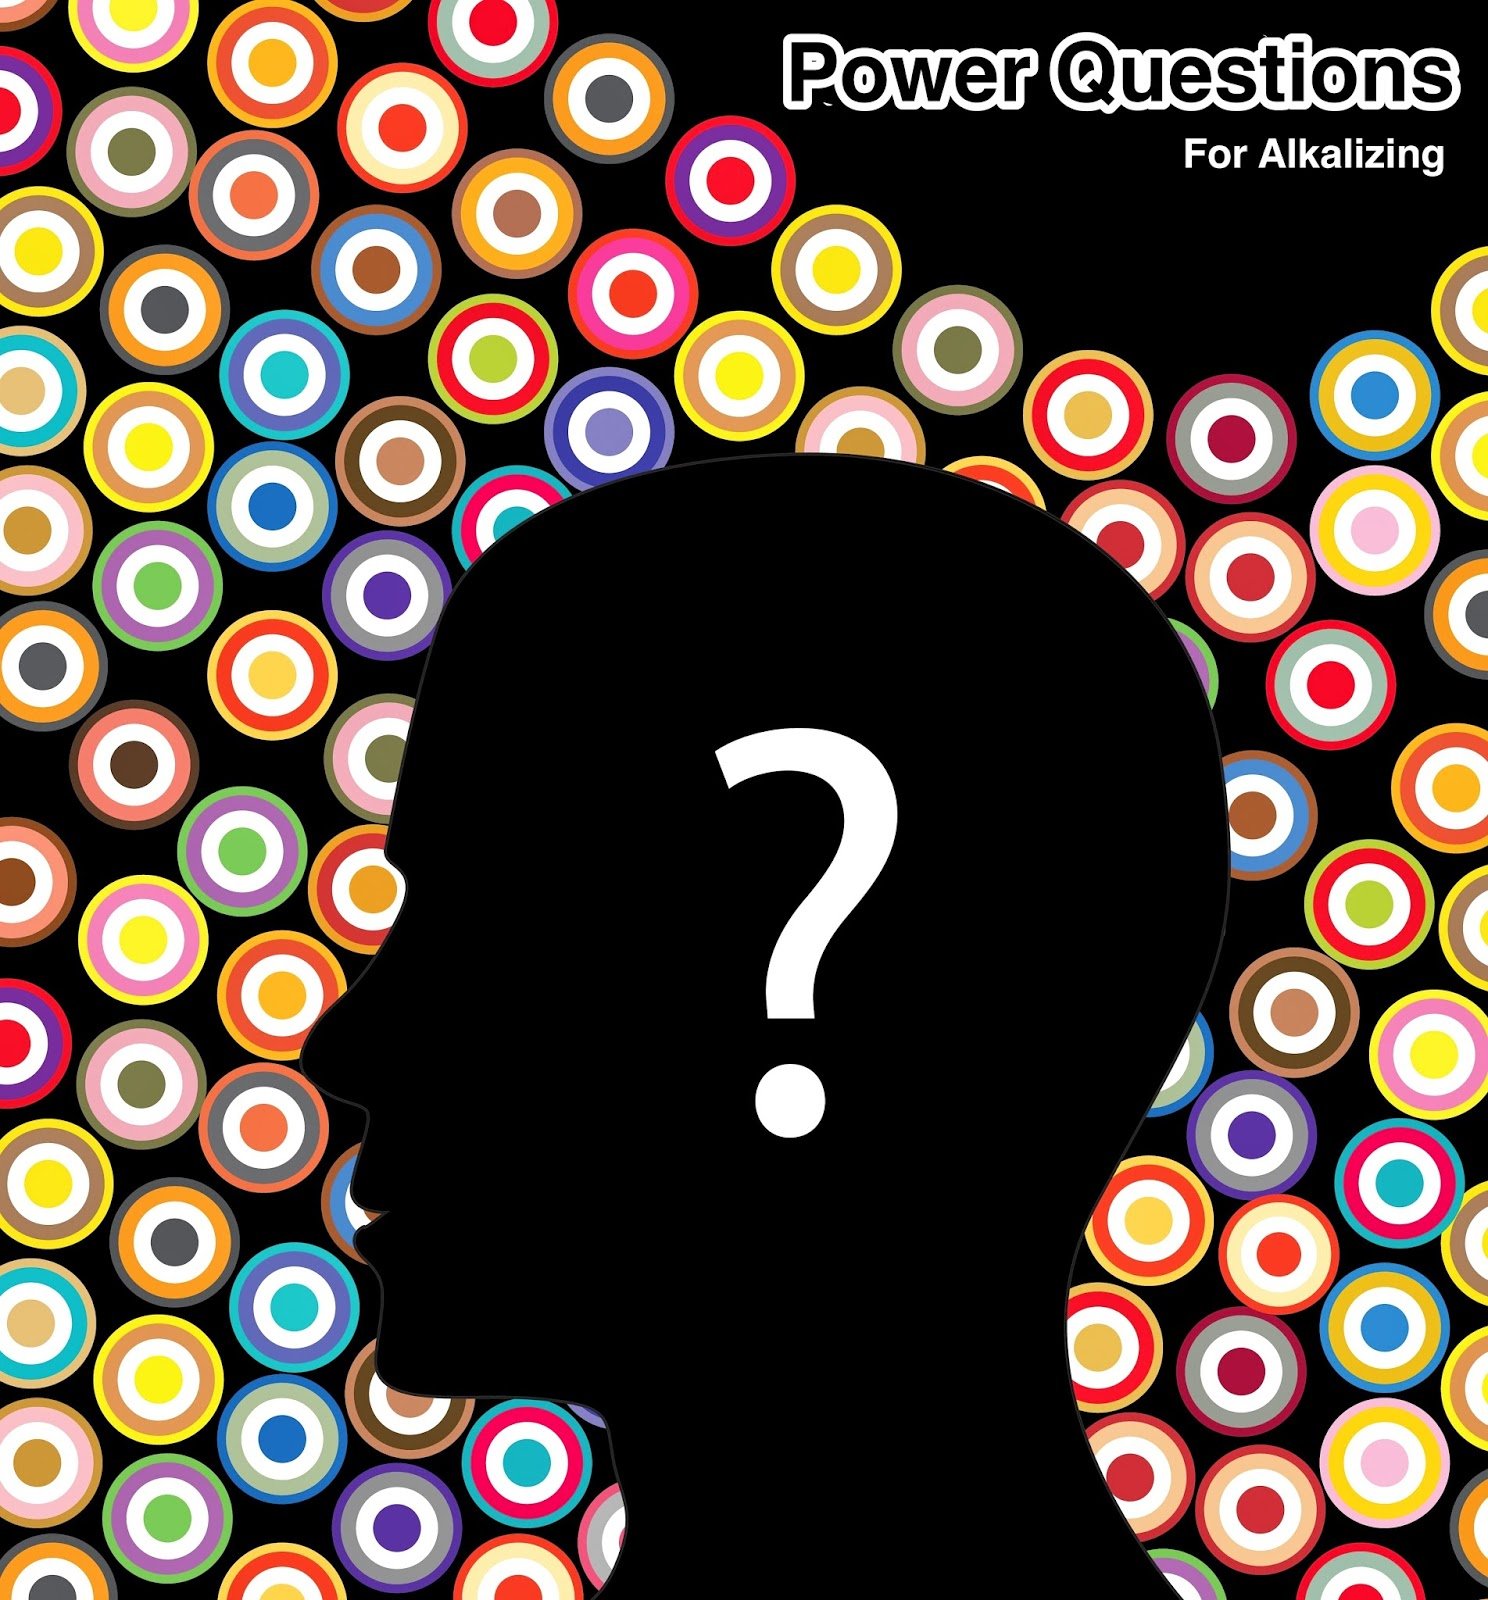 Power Questions for Alkaline, Alkalizing, and the Alkalarian Lifestyle